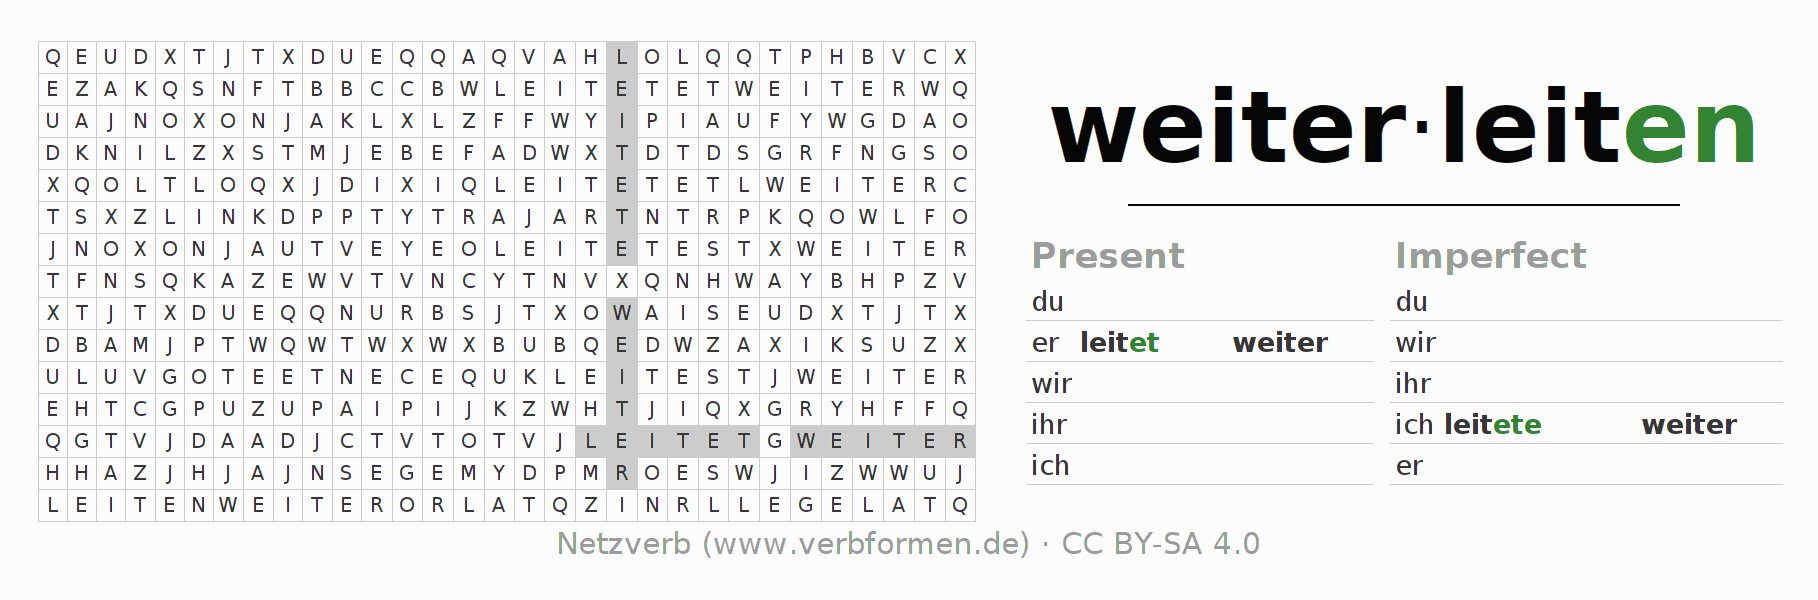 Word search puzzle for the conjugation of the verb weiterleiten